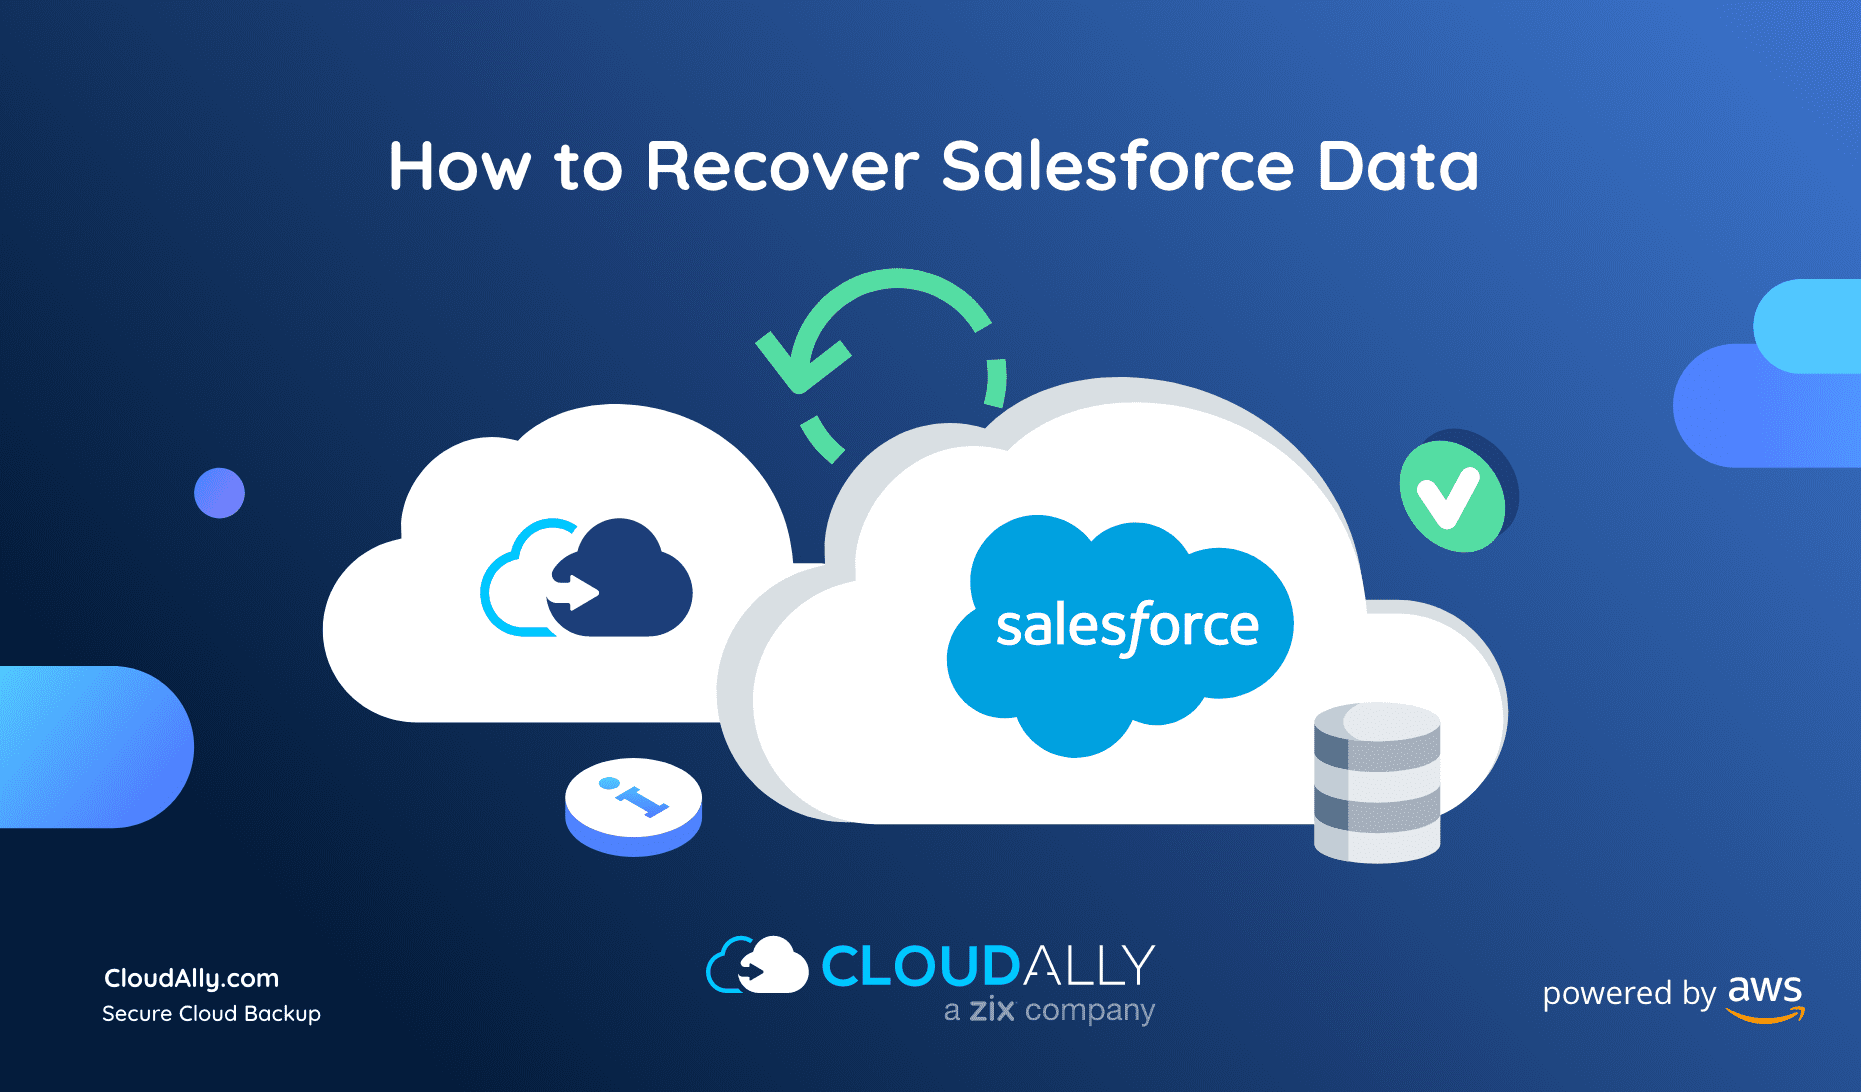 How to Recover Salesforce Data